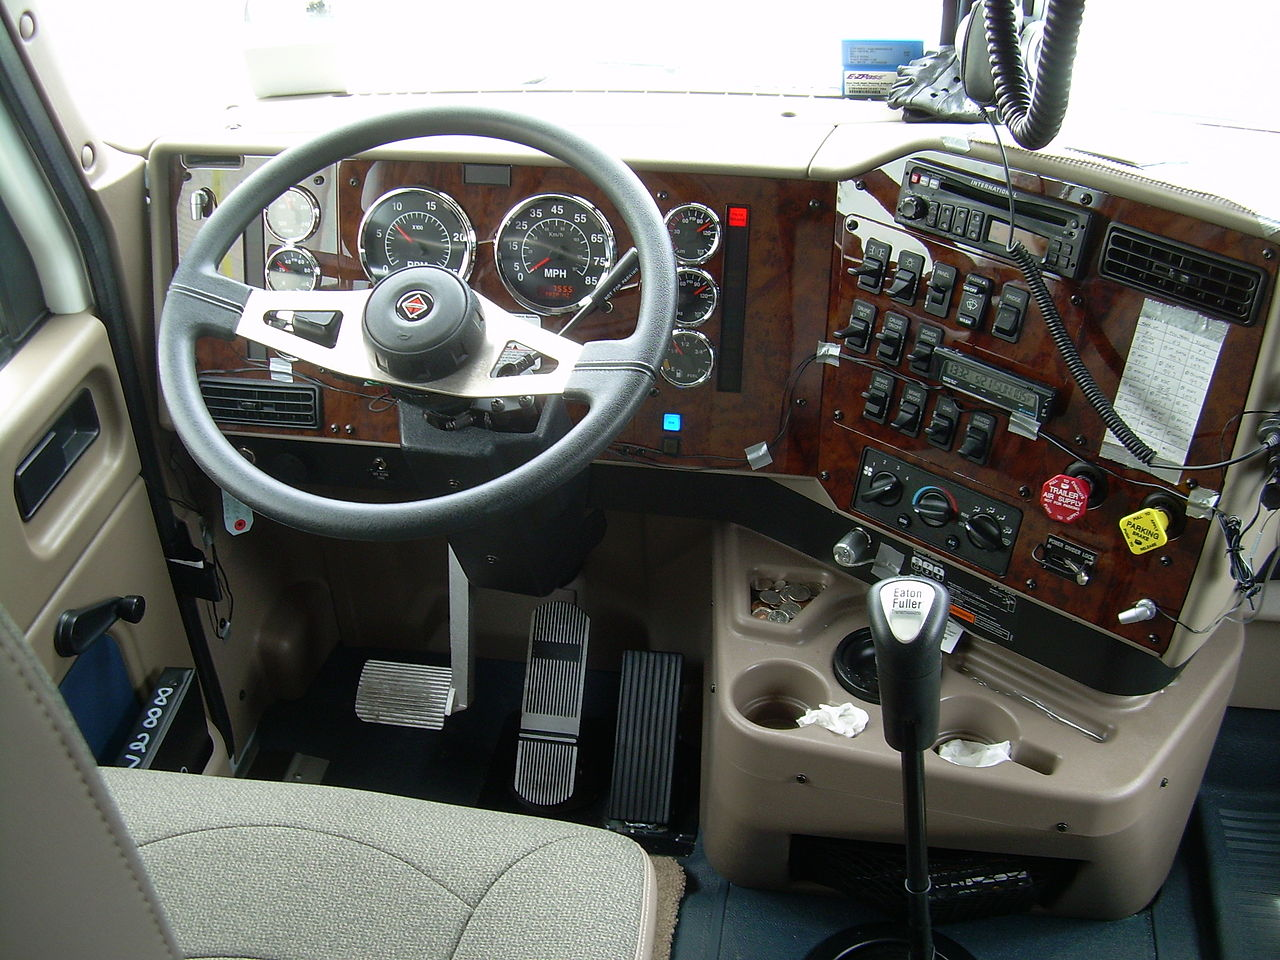 The cab of an 18-wheeler